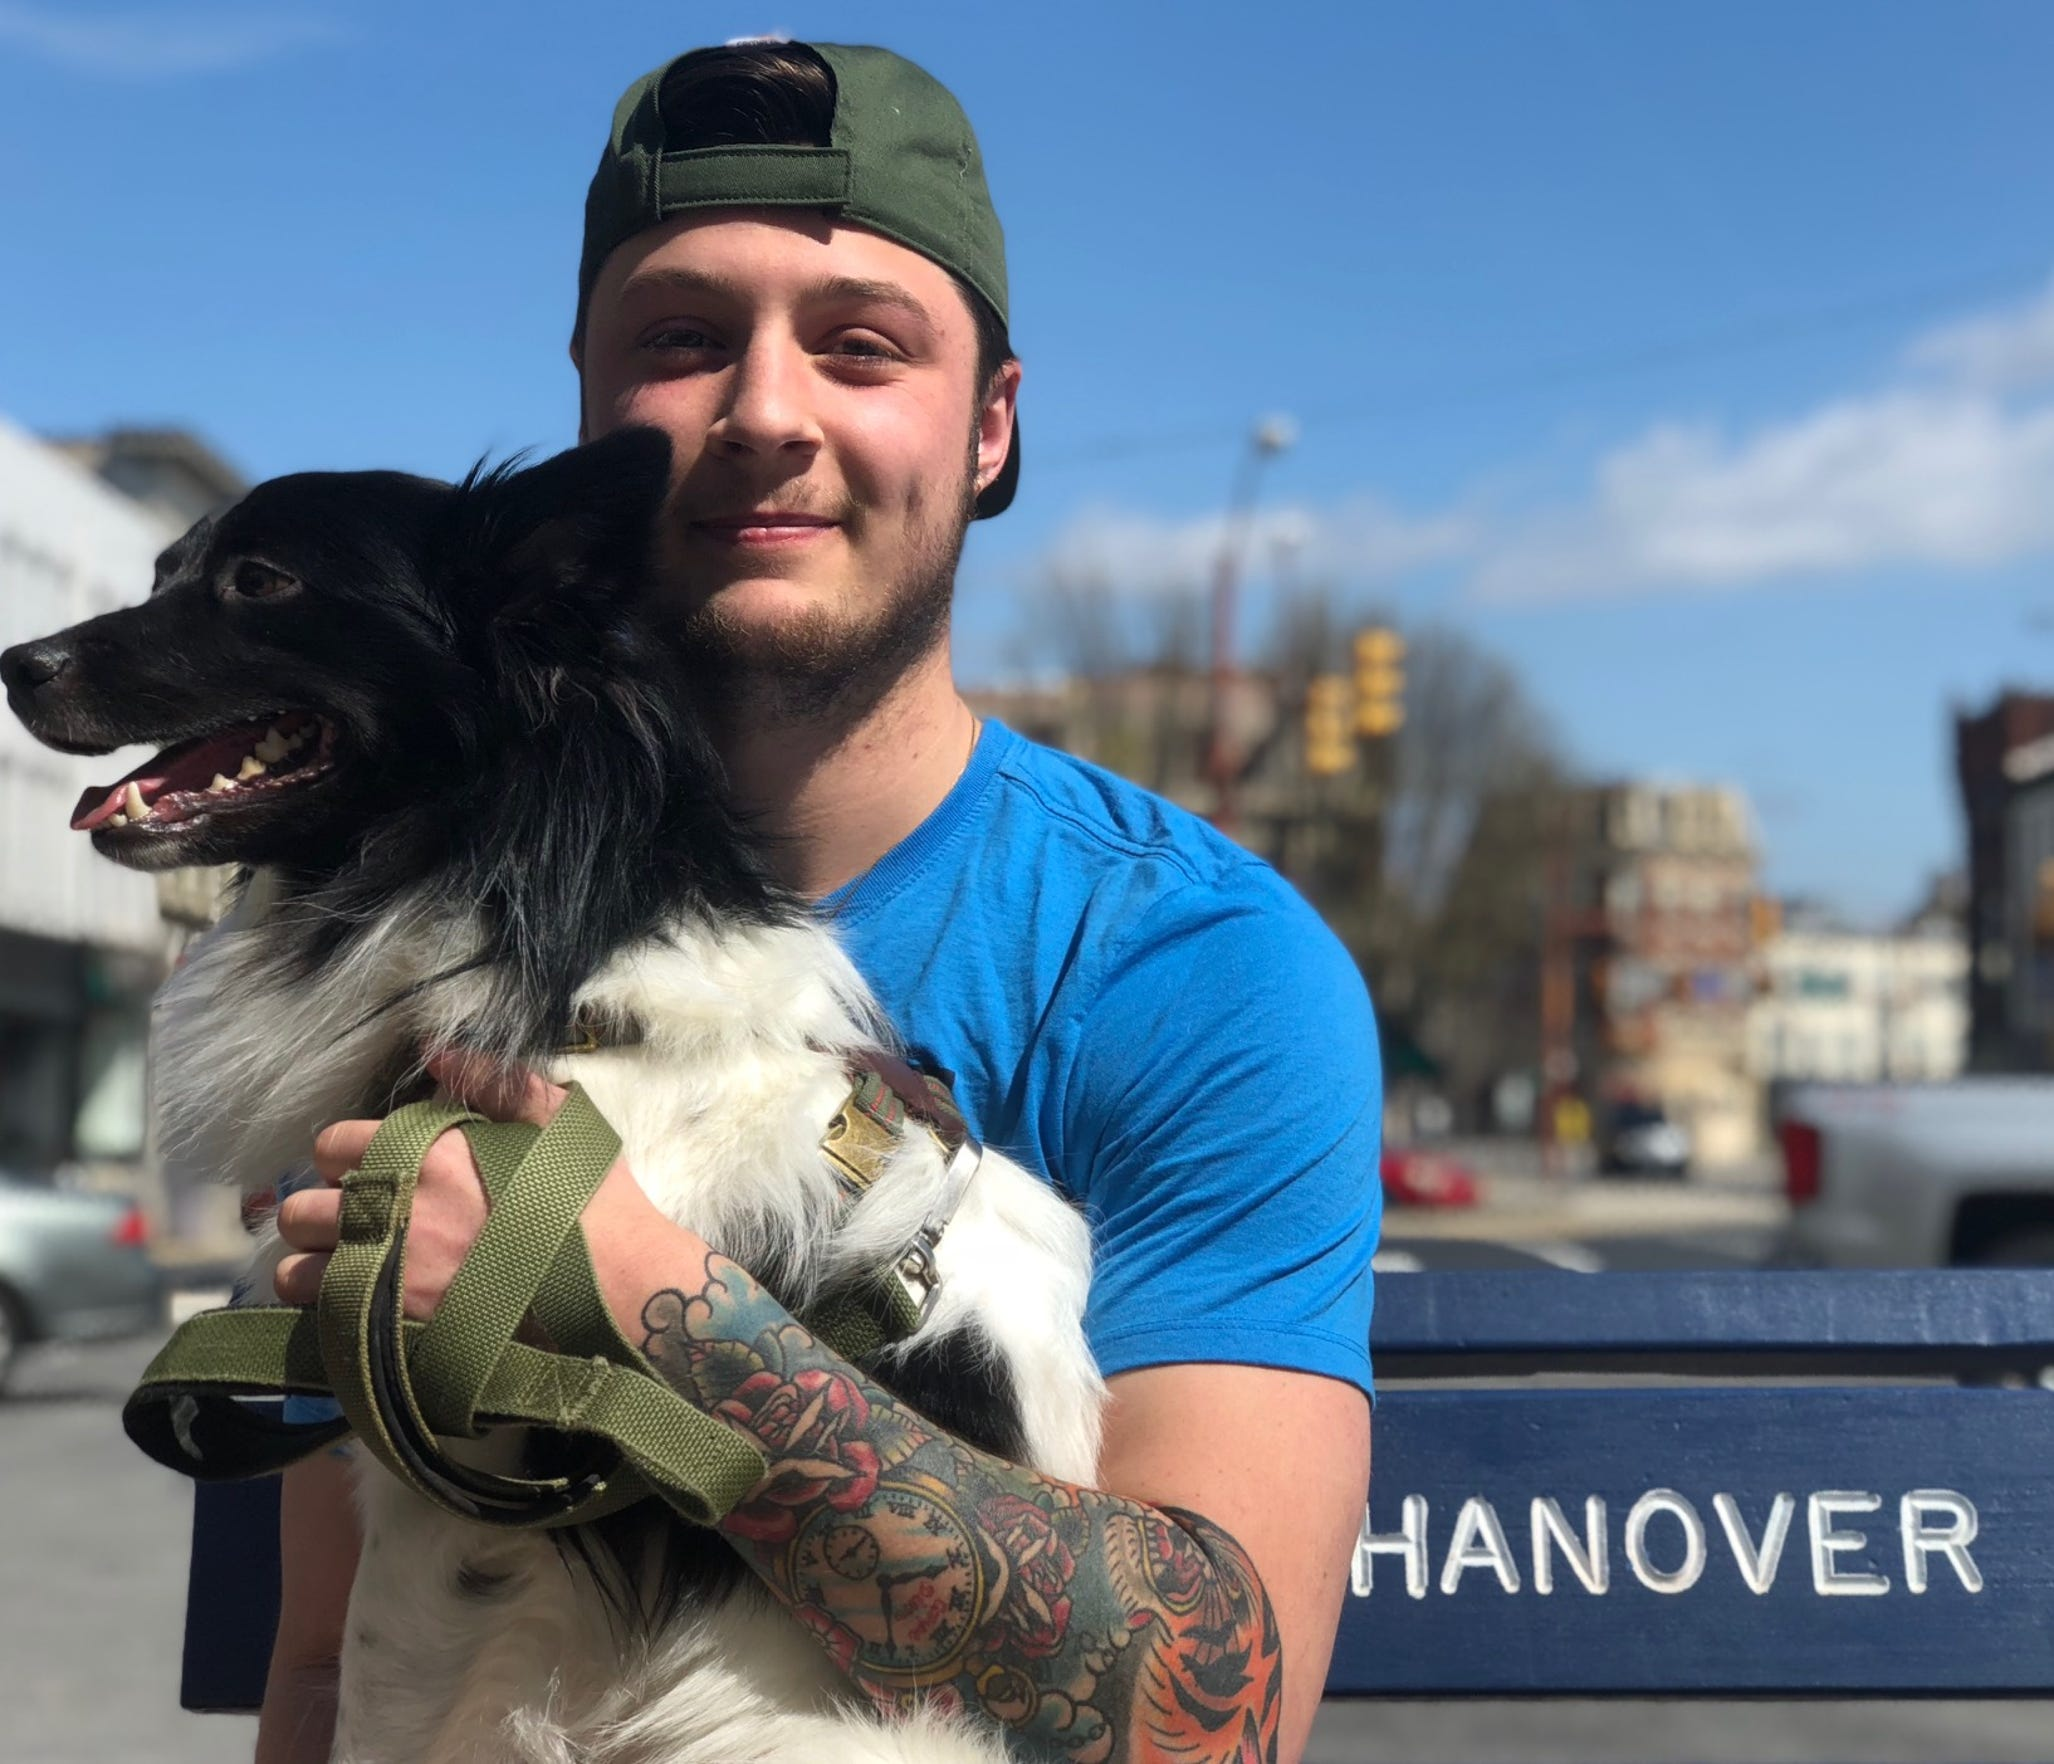 Jonathan Volee, 22, is out with his dog, Kedo, in Hanover on Tuesday, March 17, a day after Gov. Tom Wolf ordered many businesses shut down to prevent the spread of coronavirus, now a global pandemic.